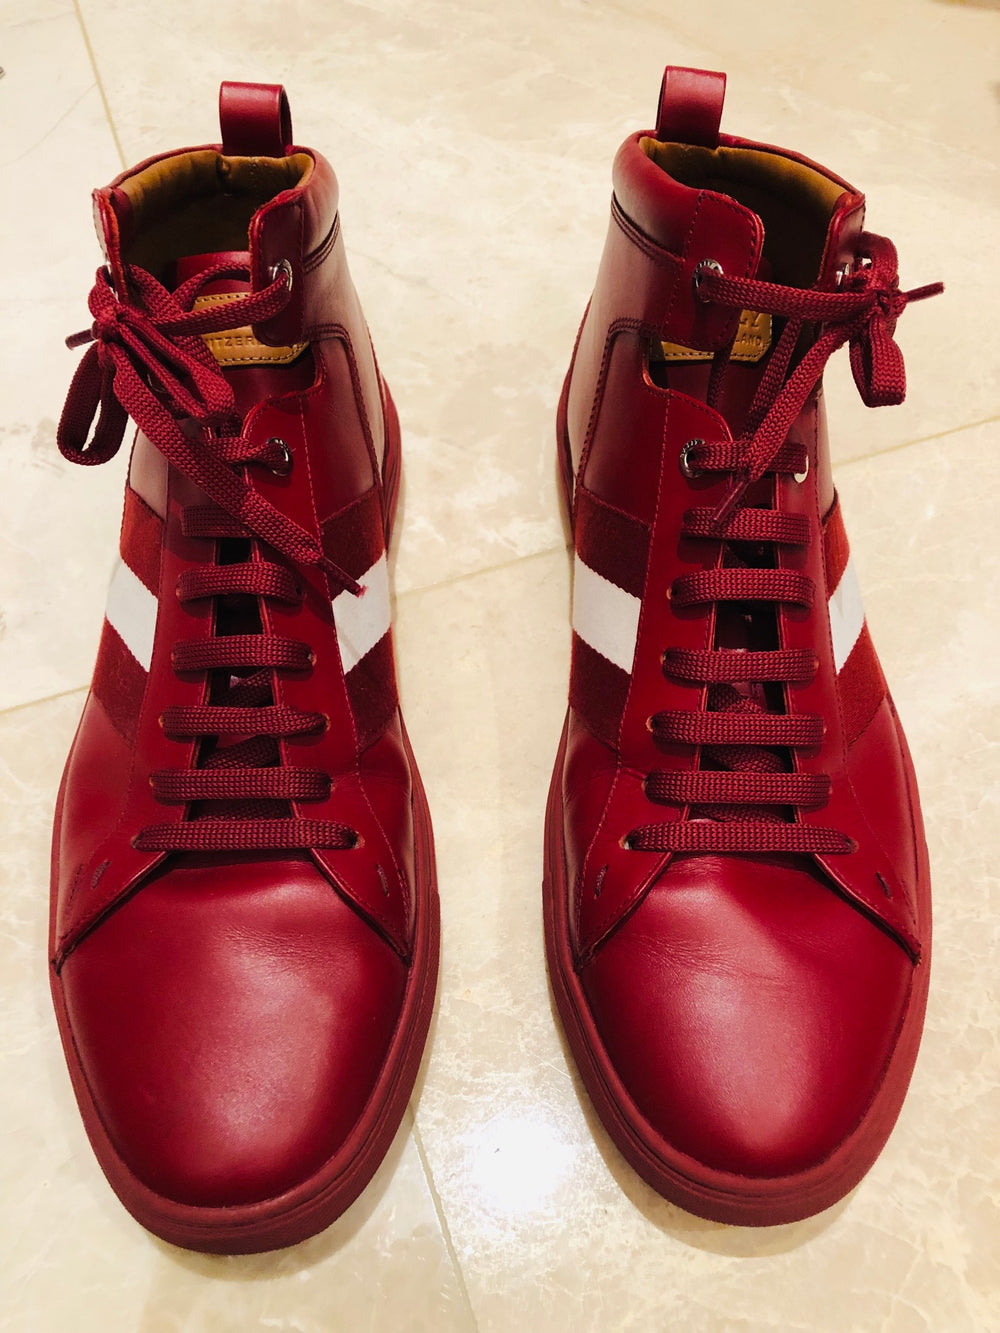 Bally Oldani Red Leather High Top Sneakers Sz 11/12